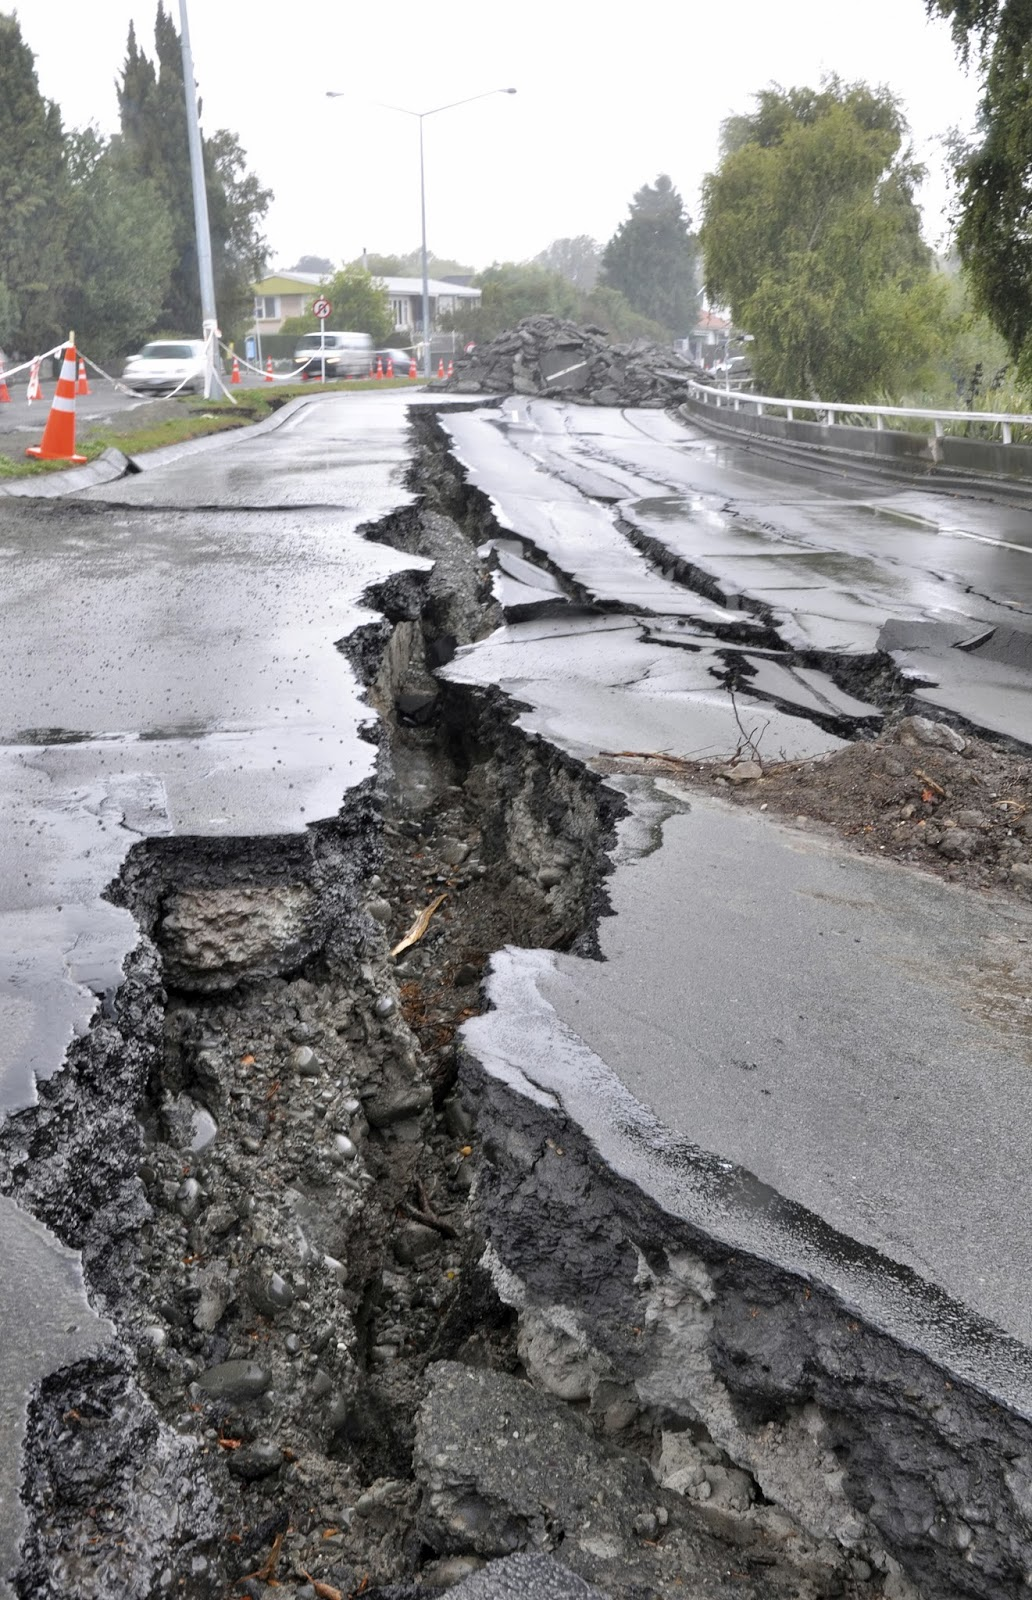 Road with large crack